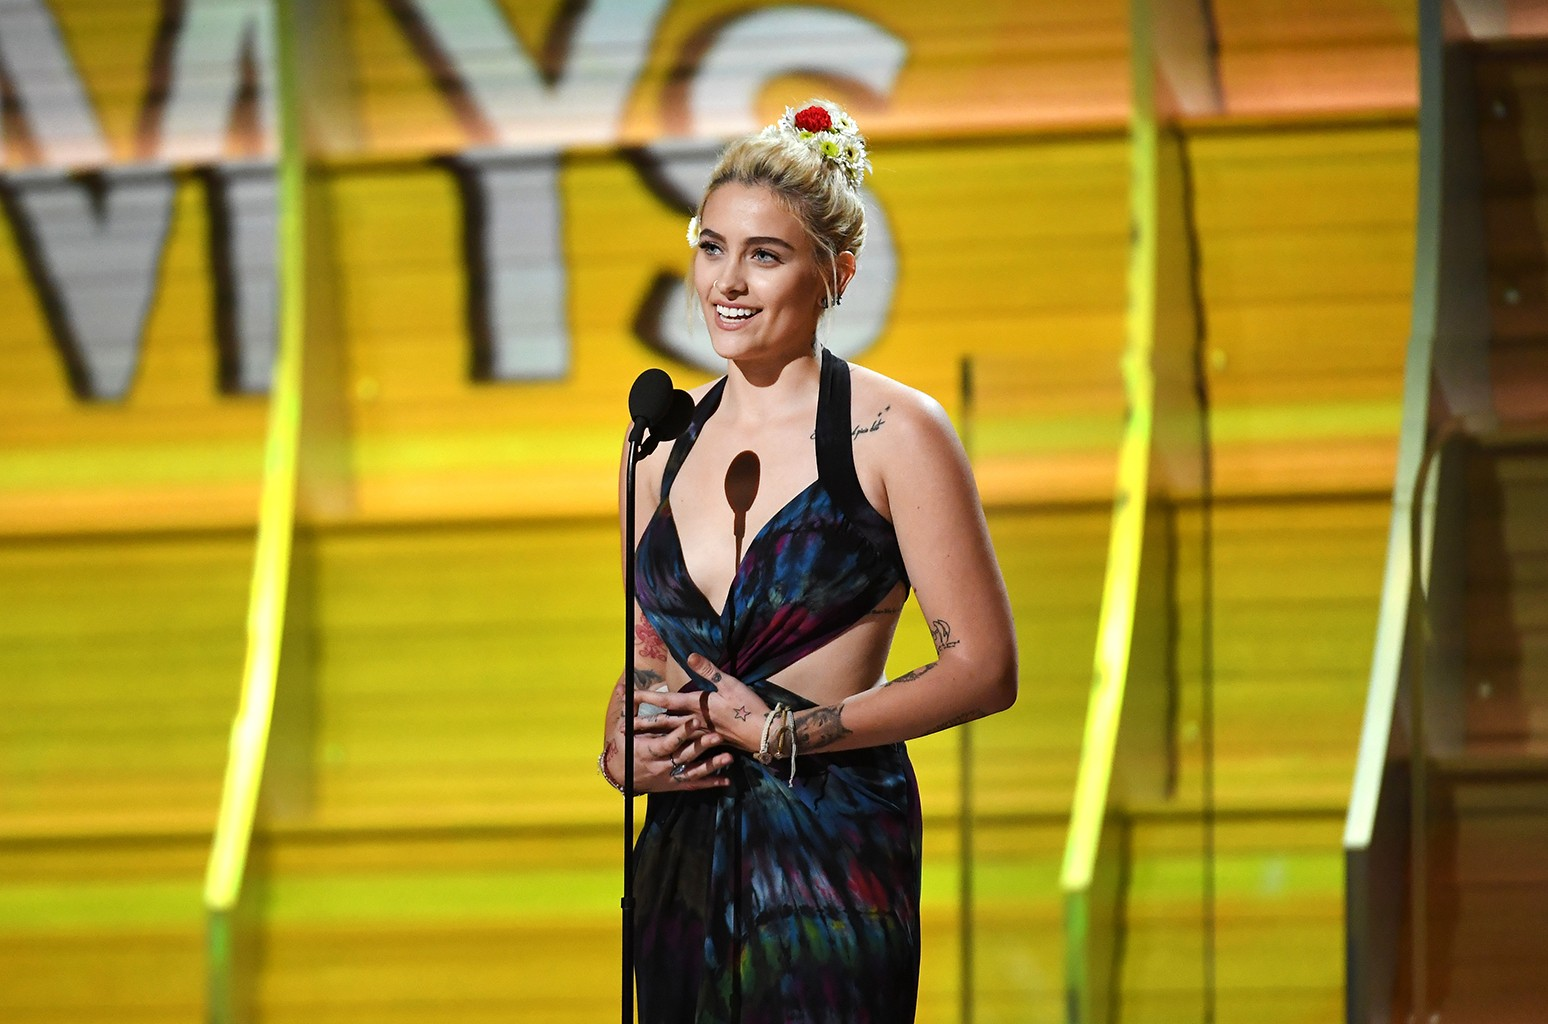 Paris Jackson speaks onstage during The 59th Grammy Awards at Staples Center on Feb. 12, 2017 in Los Angeles.